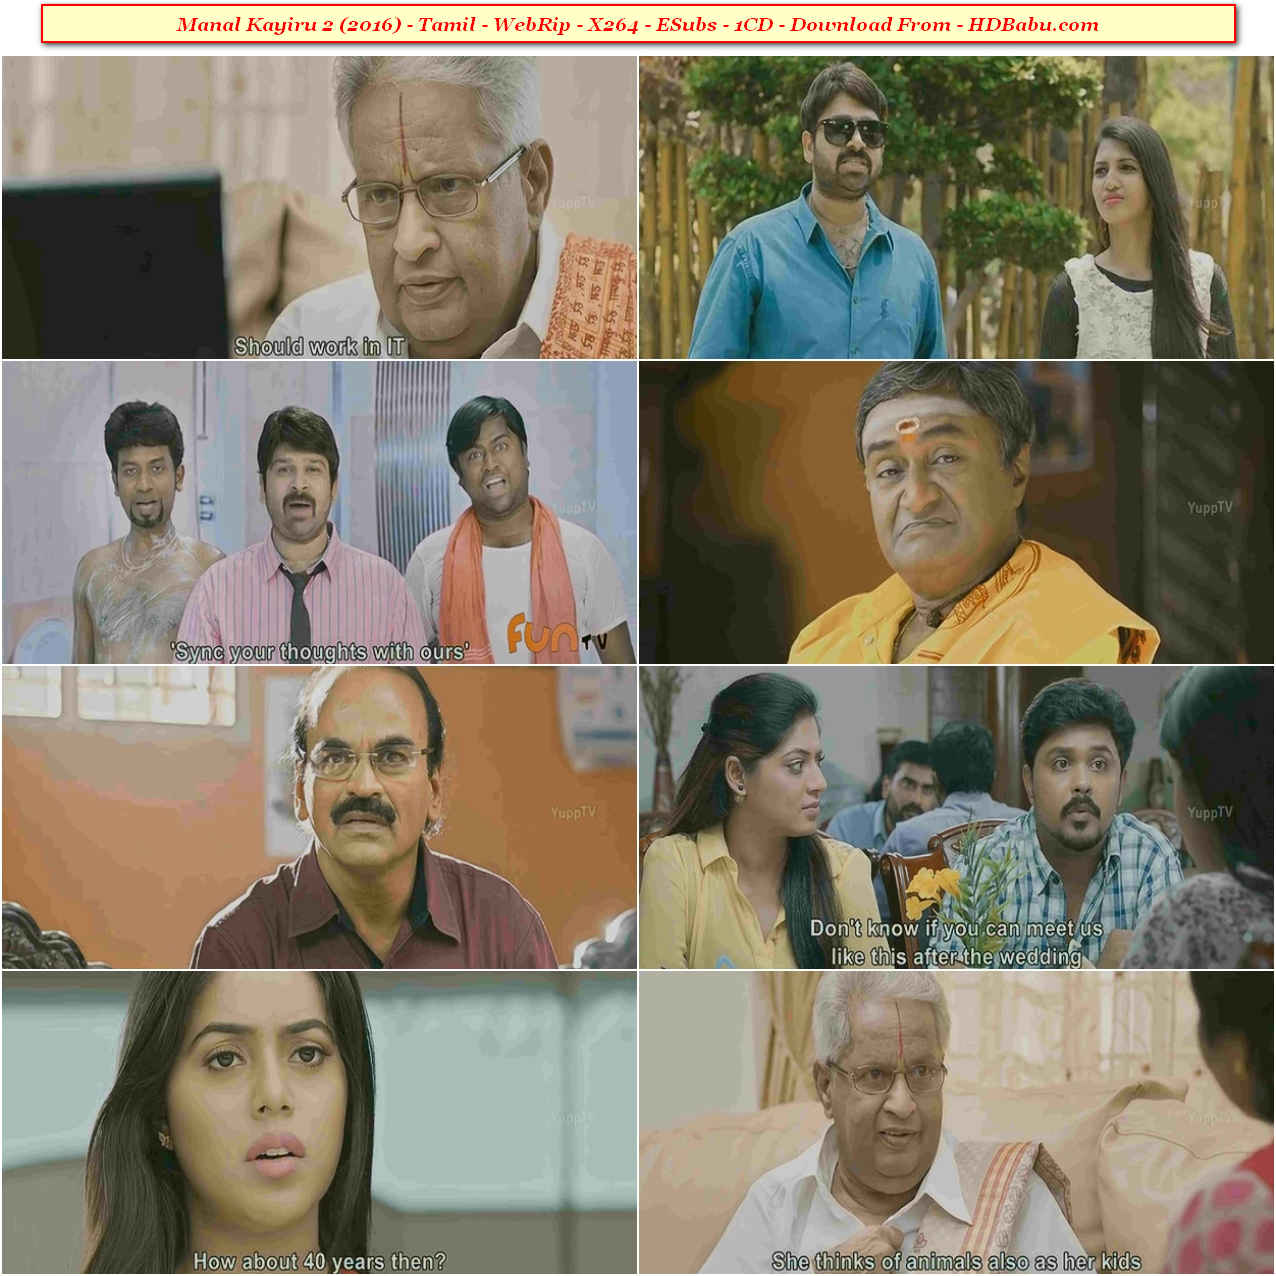 Manal Kayiru 2 Full Movie Download, Manal Kayiru 2 (2016) Tamil WebRip x264 1CD 700MB ESub